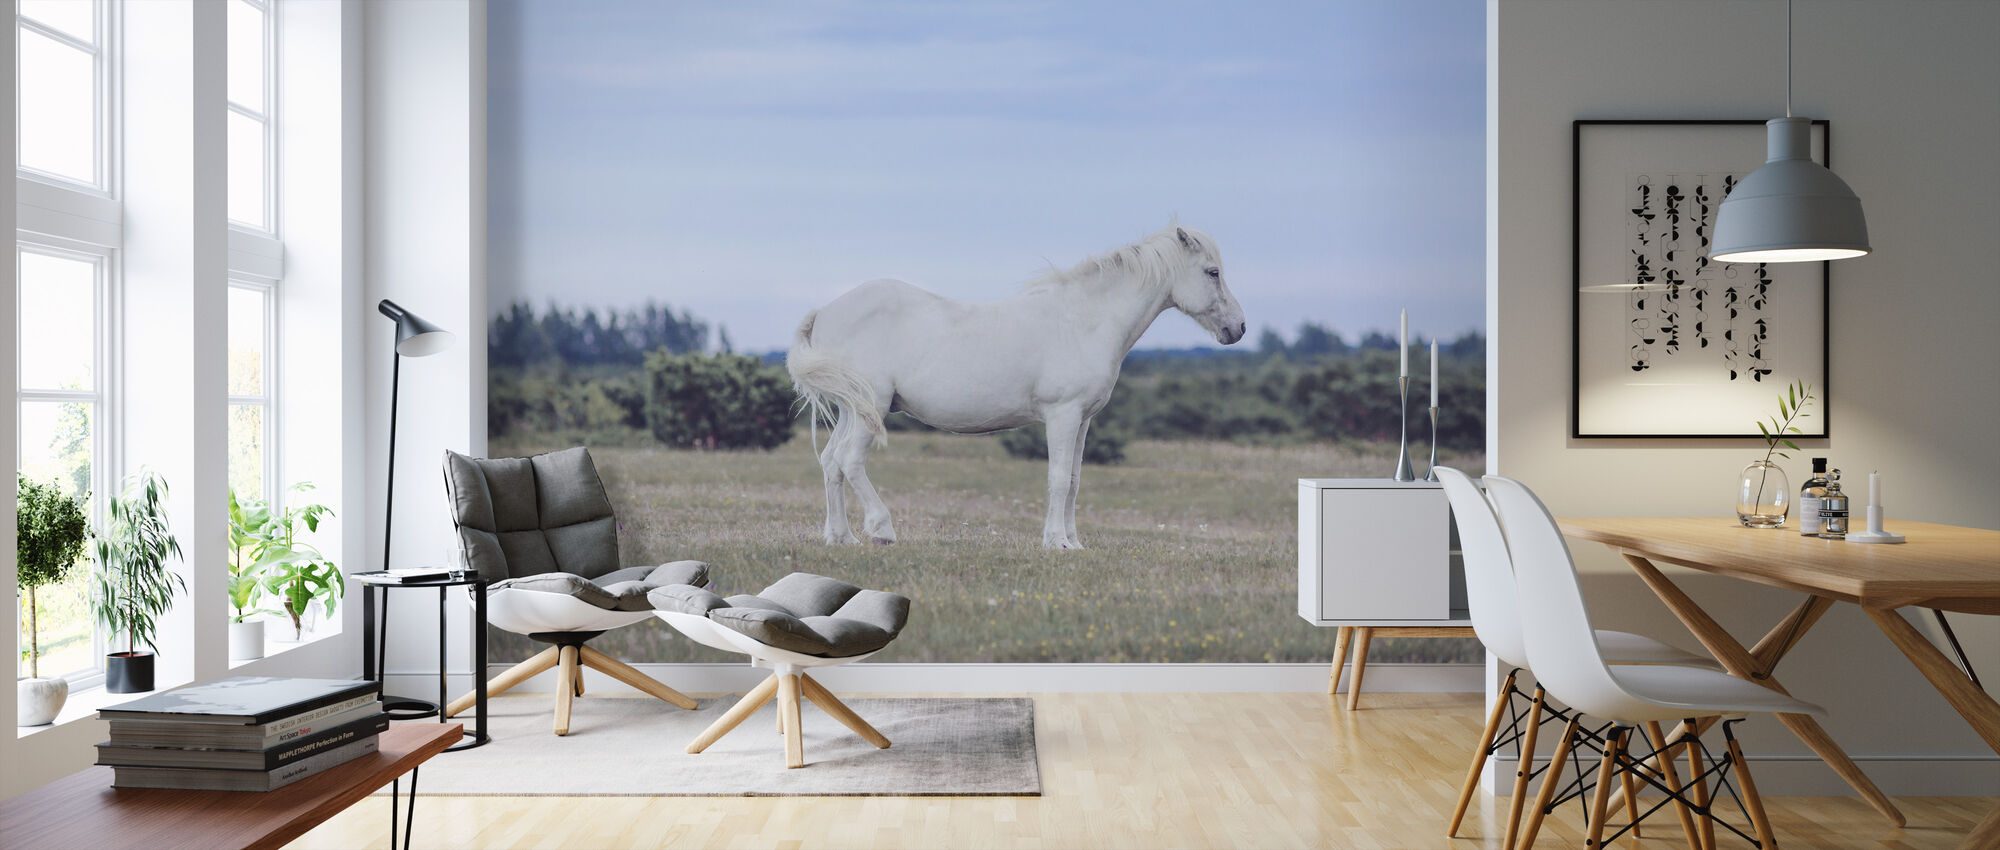 White Pony - Wallpaper - Living Room